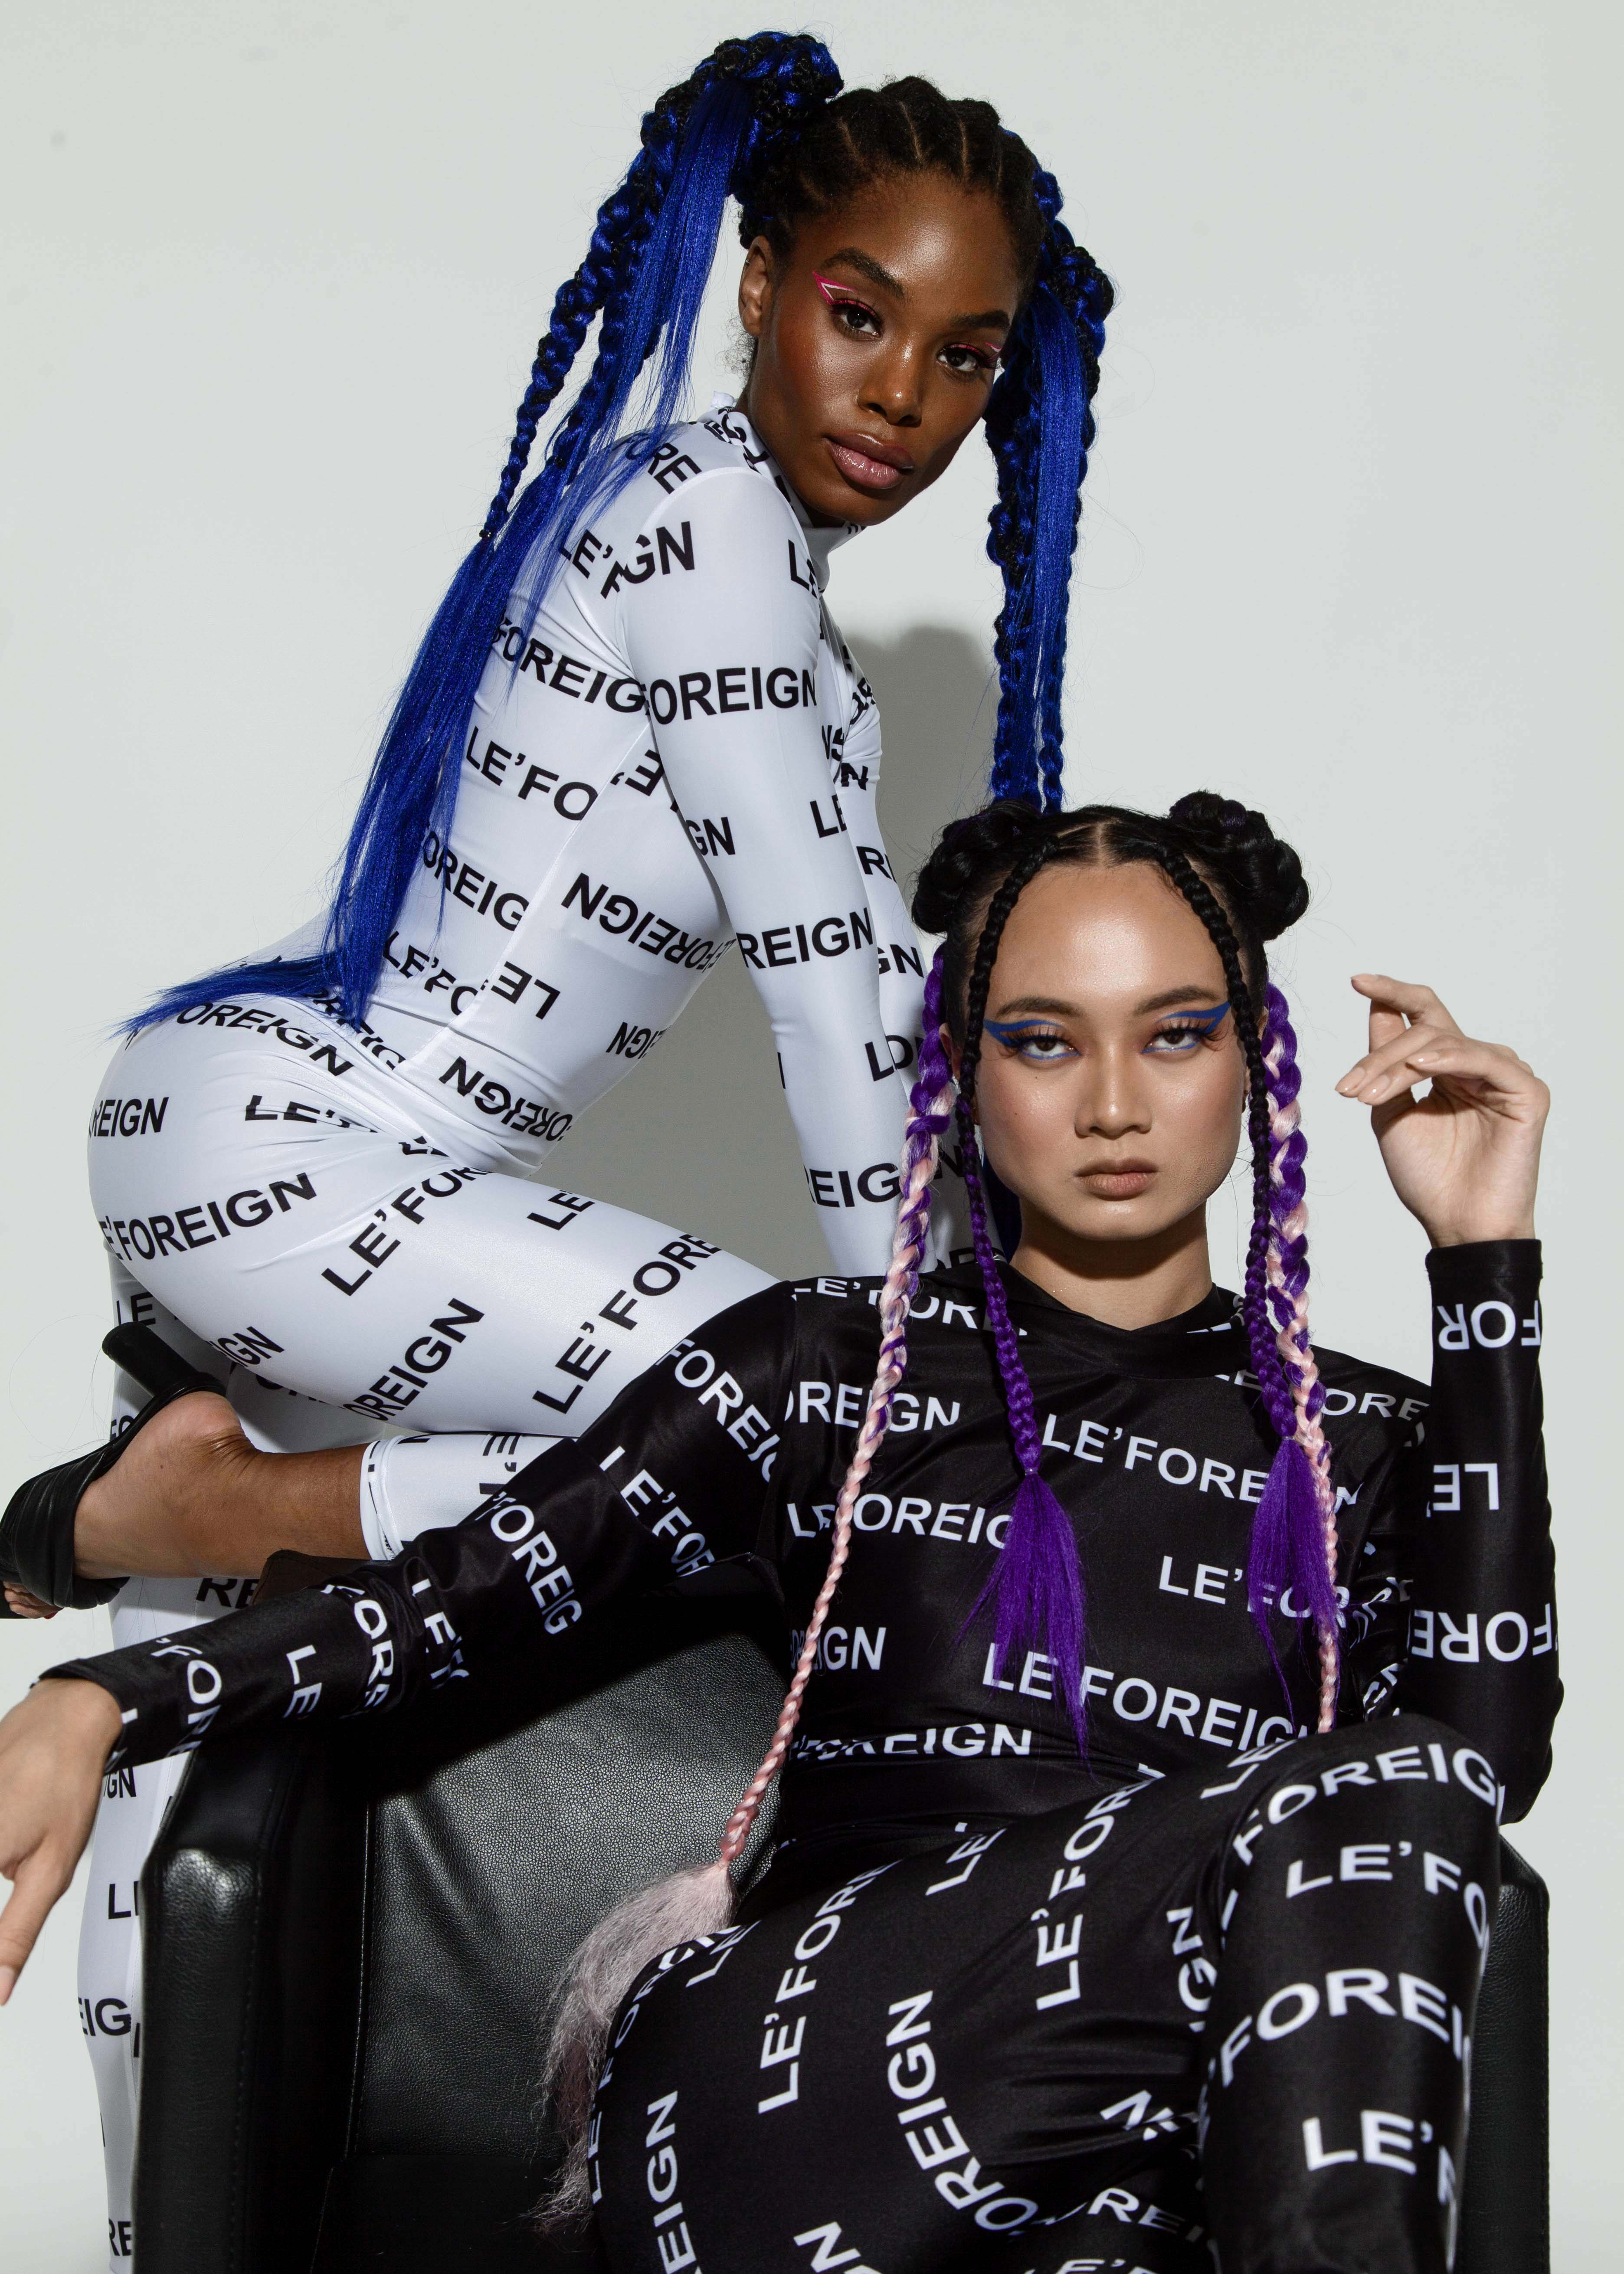 Le' Foreign fuses style and functionality in black and white activewear collection